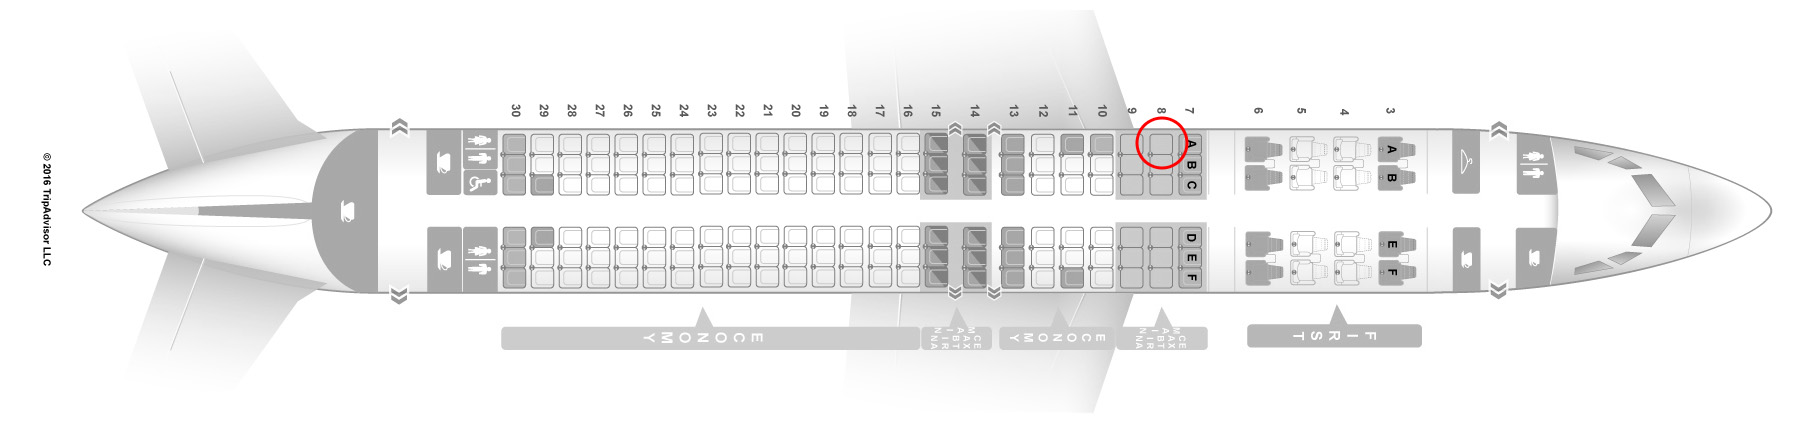 Delta Seat Map on